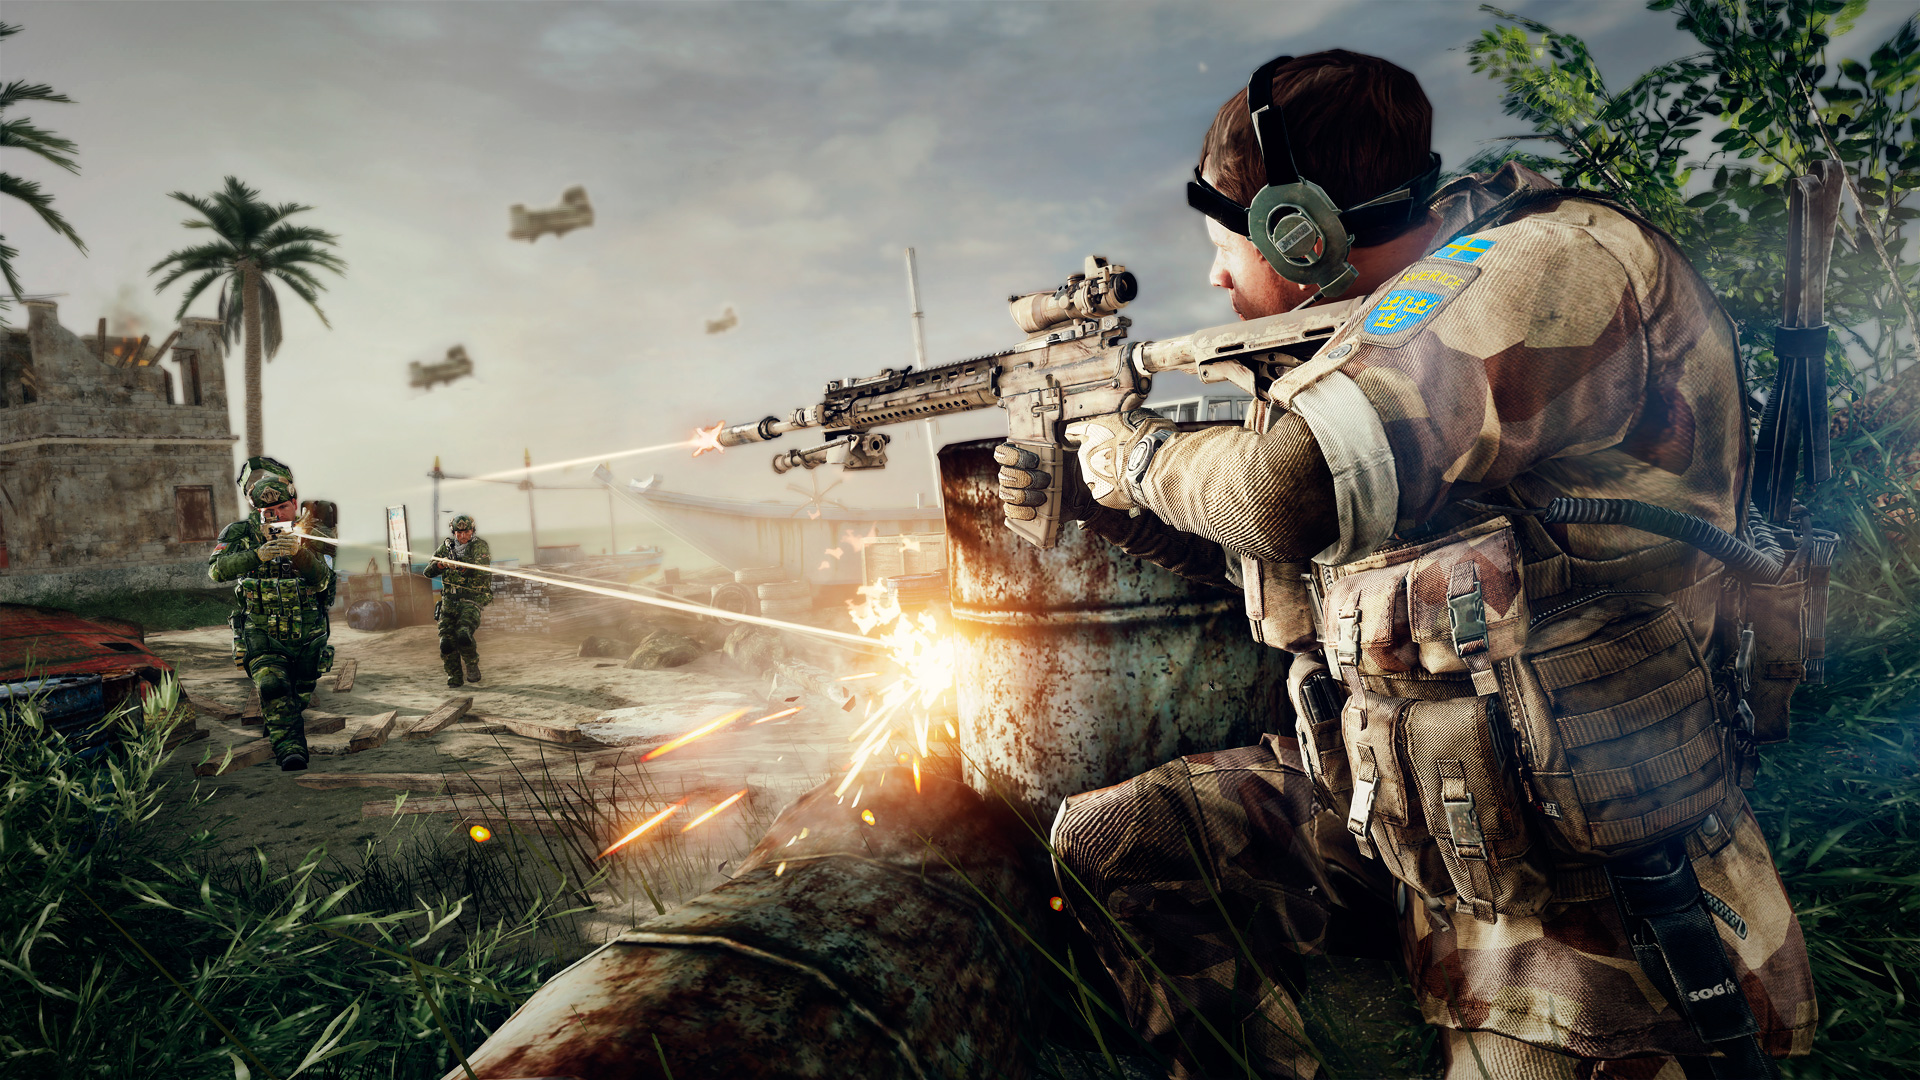 Los analistas no confían en que Medal of Honor: Warfighter sea un éxito en ventas [Predicciones]